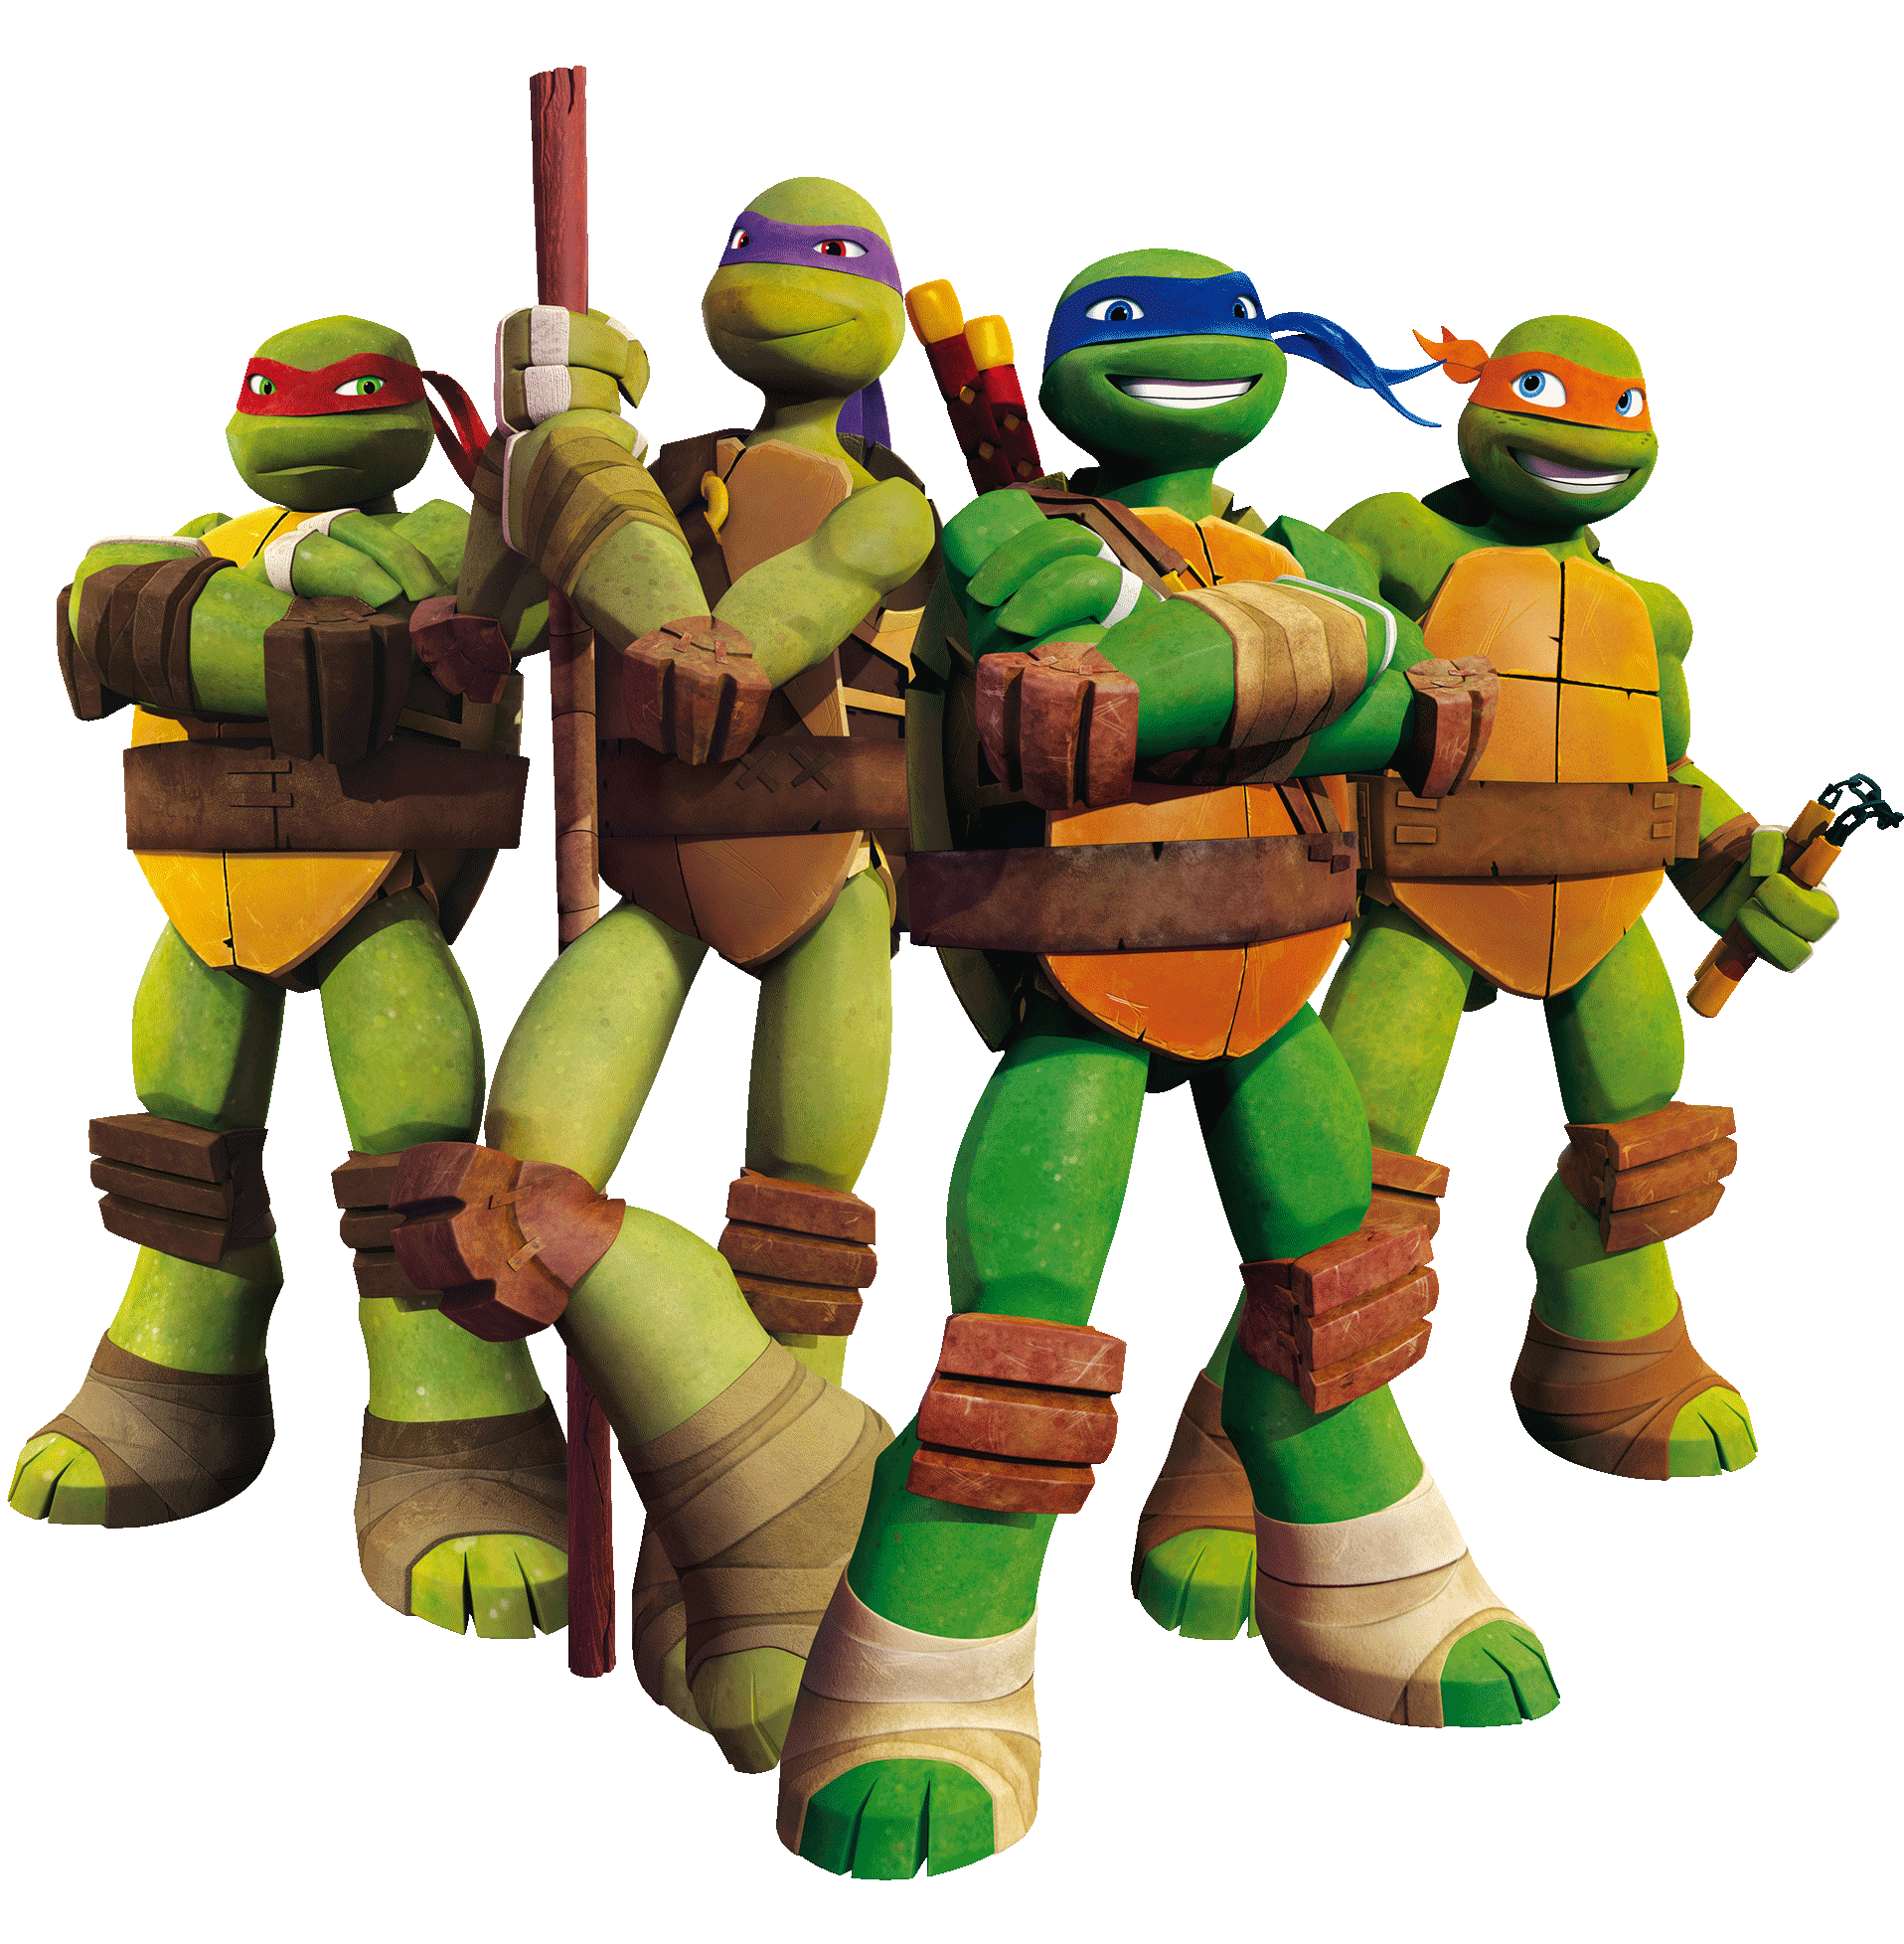 Watch Ninja Turtles 2 DVD, BLU-RAY AND